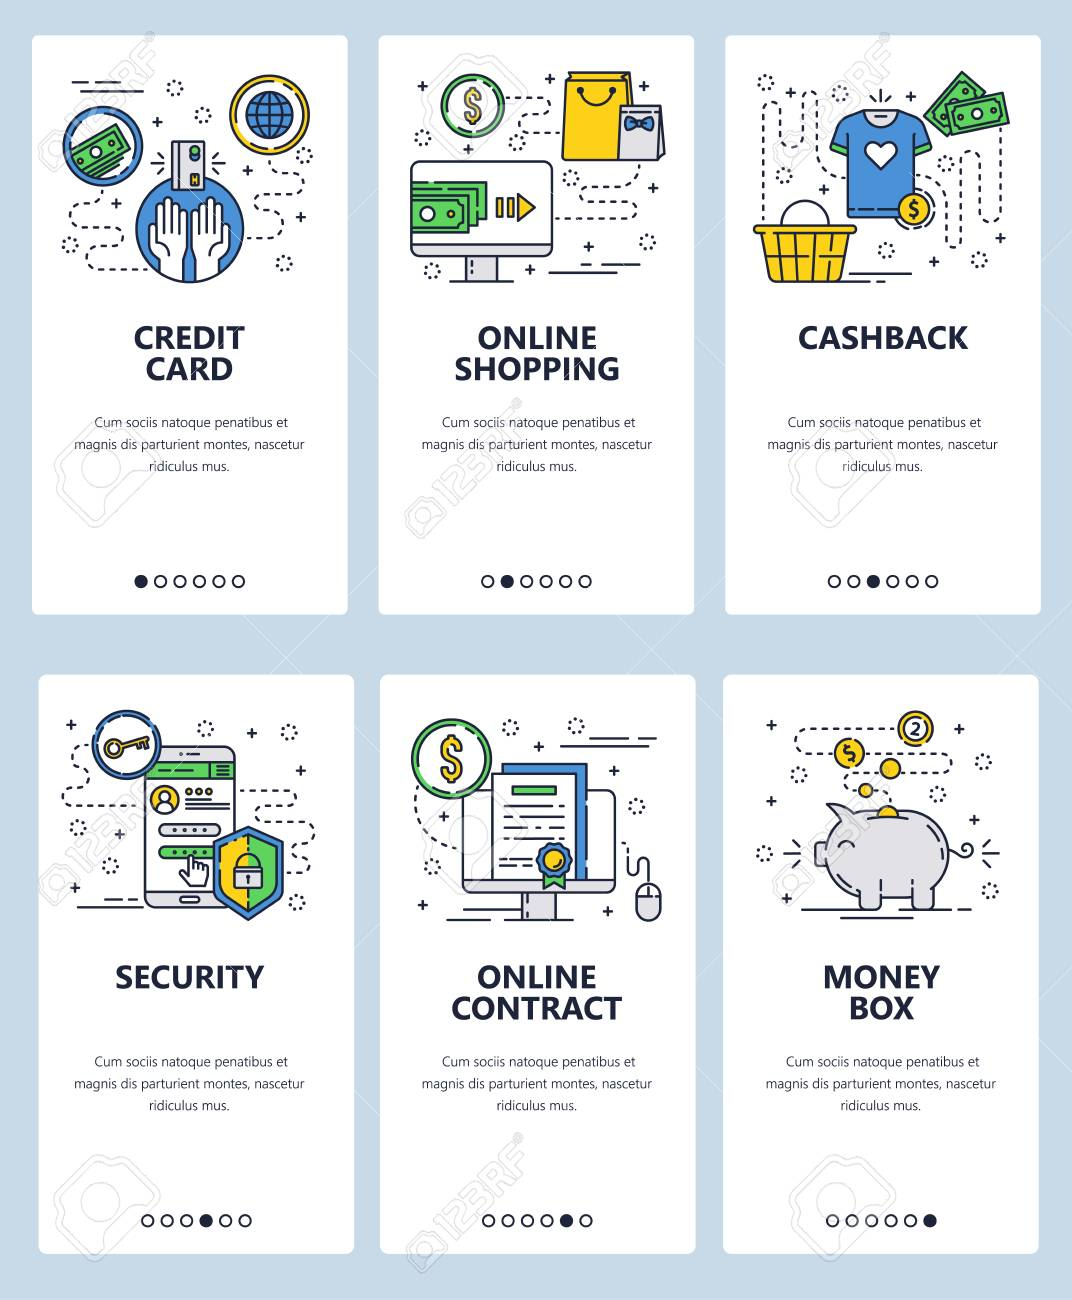 074321e8e Vector - Vector web site linear art onboarding screens template. Online  shoping and secure internet payments. Cashback, credit card and piggy money.